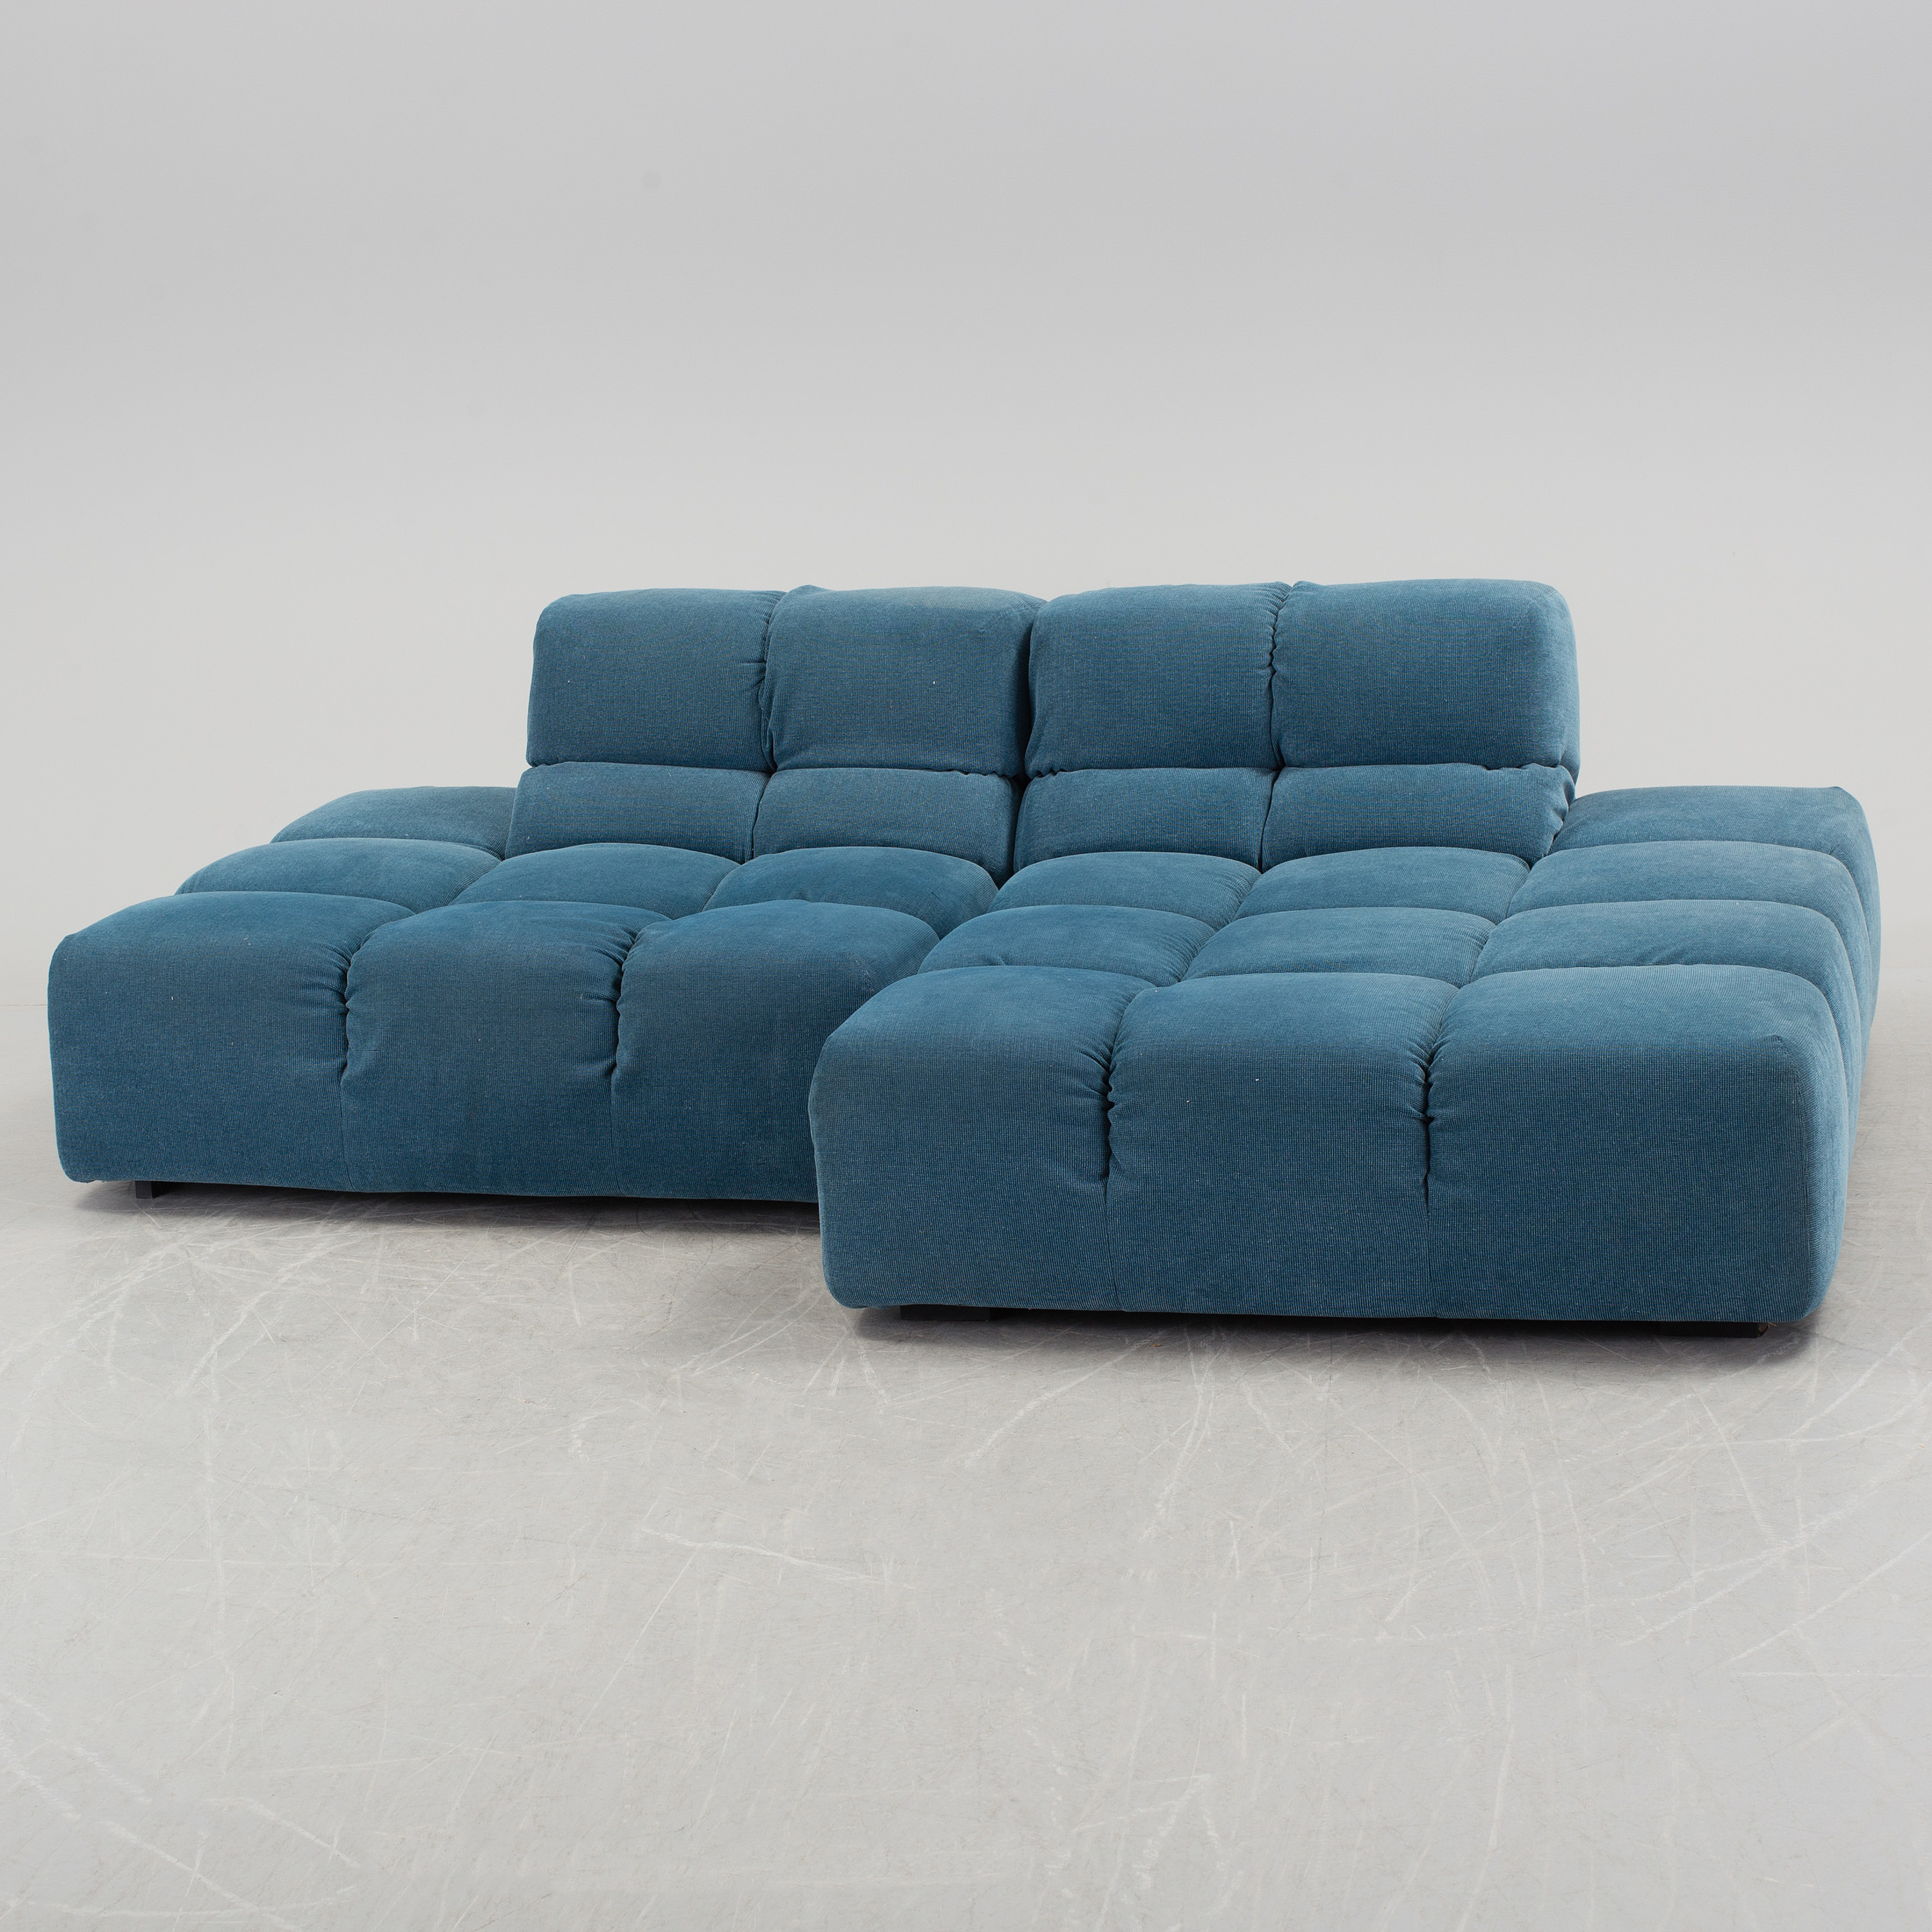 A Twp Sectioned Tufty Time Sofa By Patricia Urquliola For B B